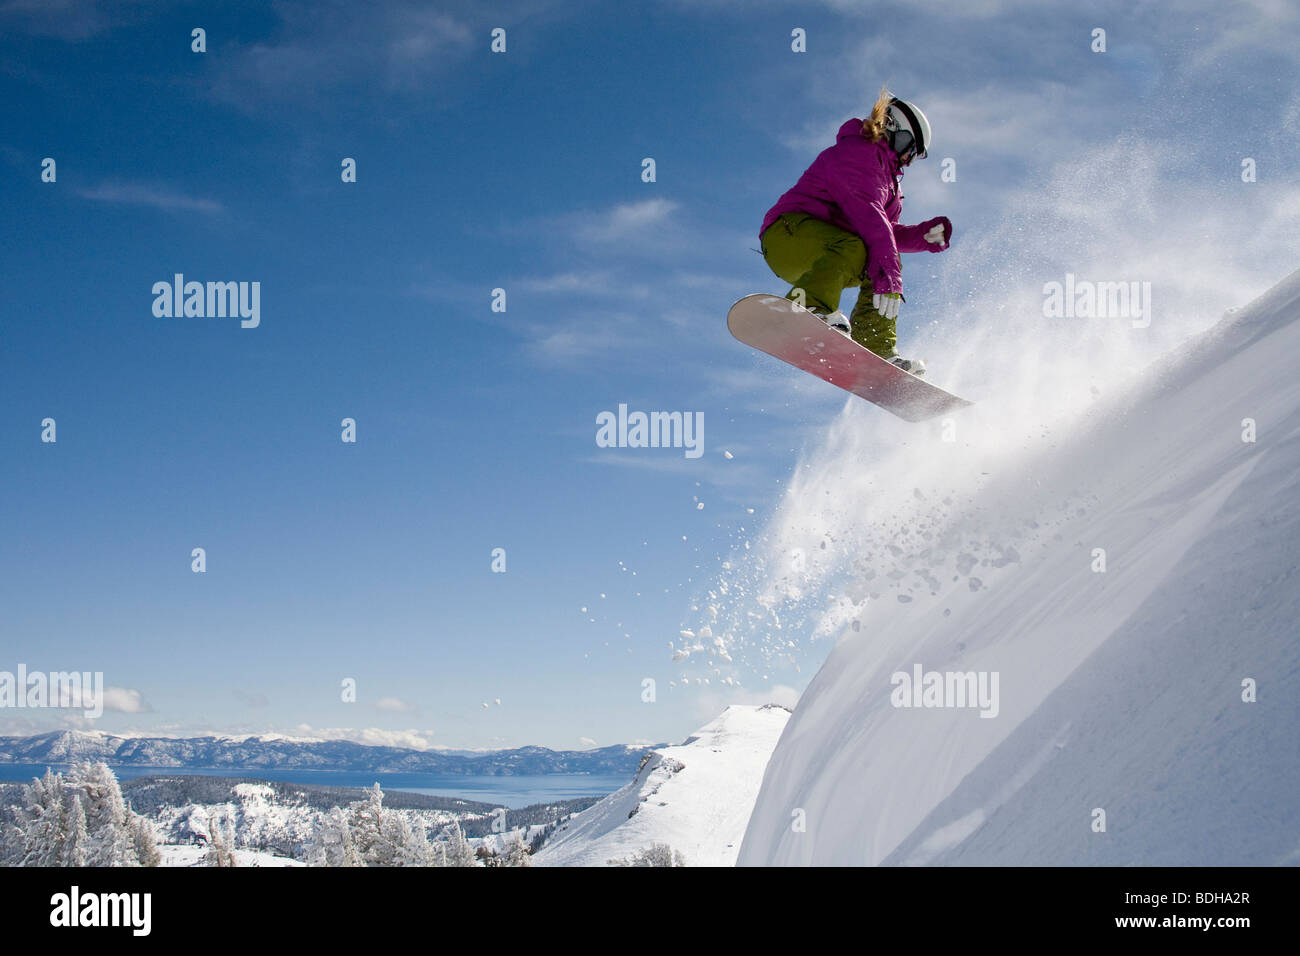 A female snowboarder doing a 540 in the backcountry on a sunny day in California. - Stock Image